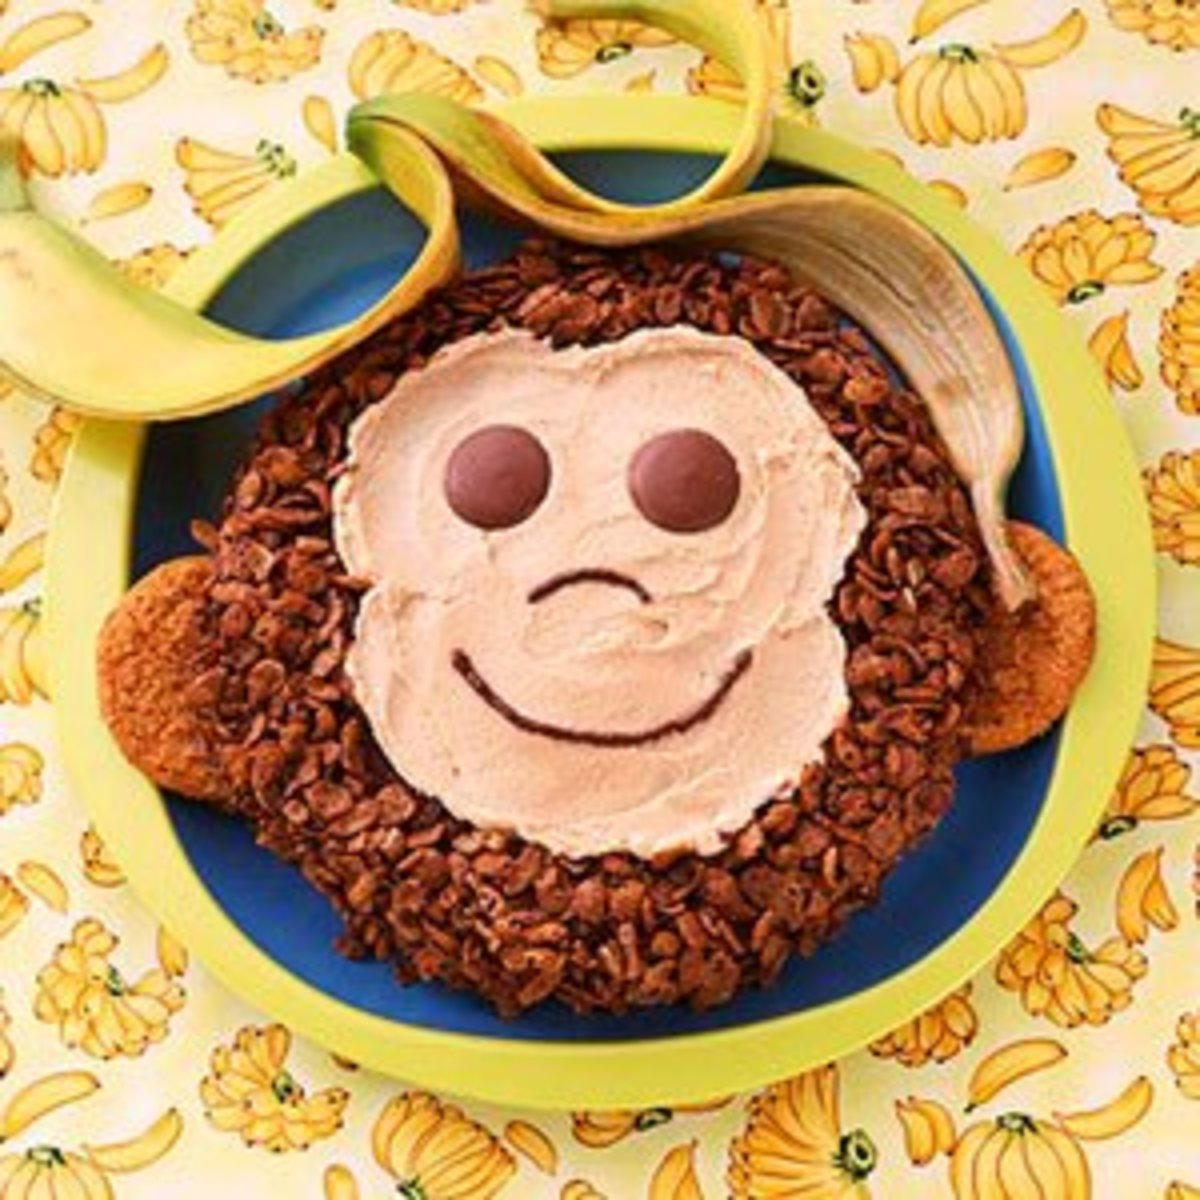 Monkey Birthday Cakes, Cupcakes and Cookies